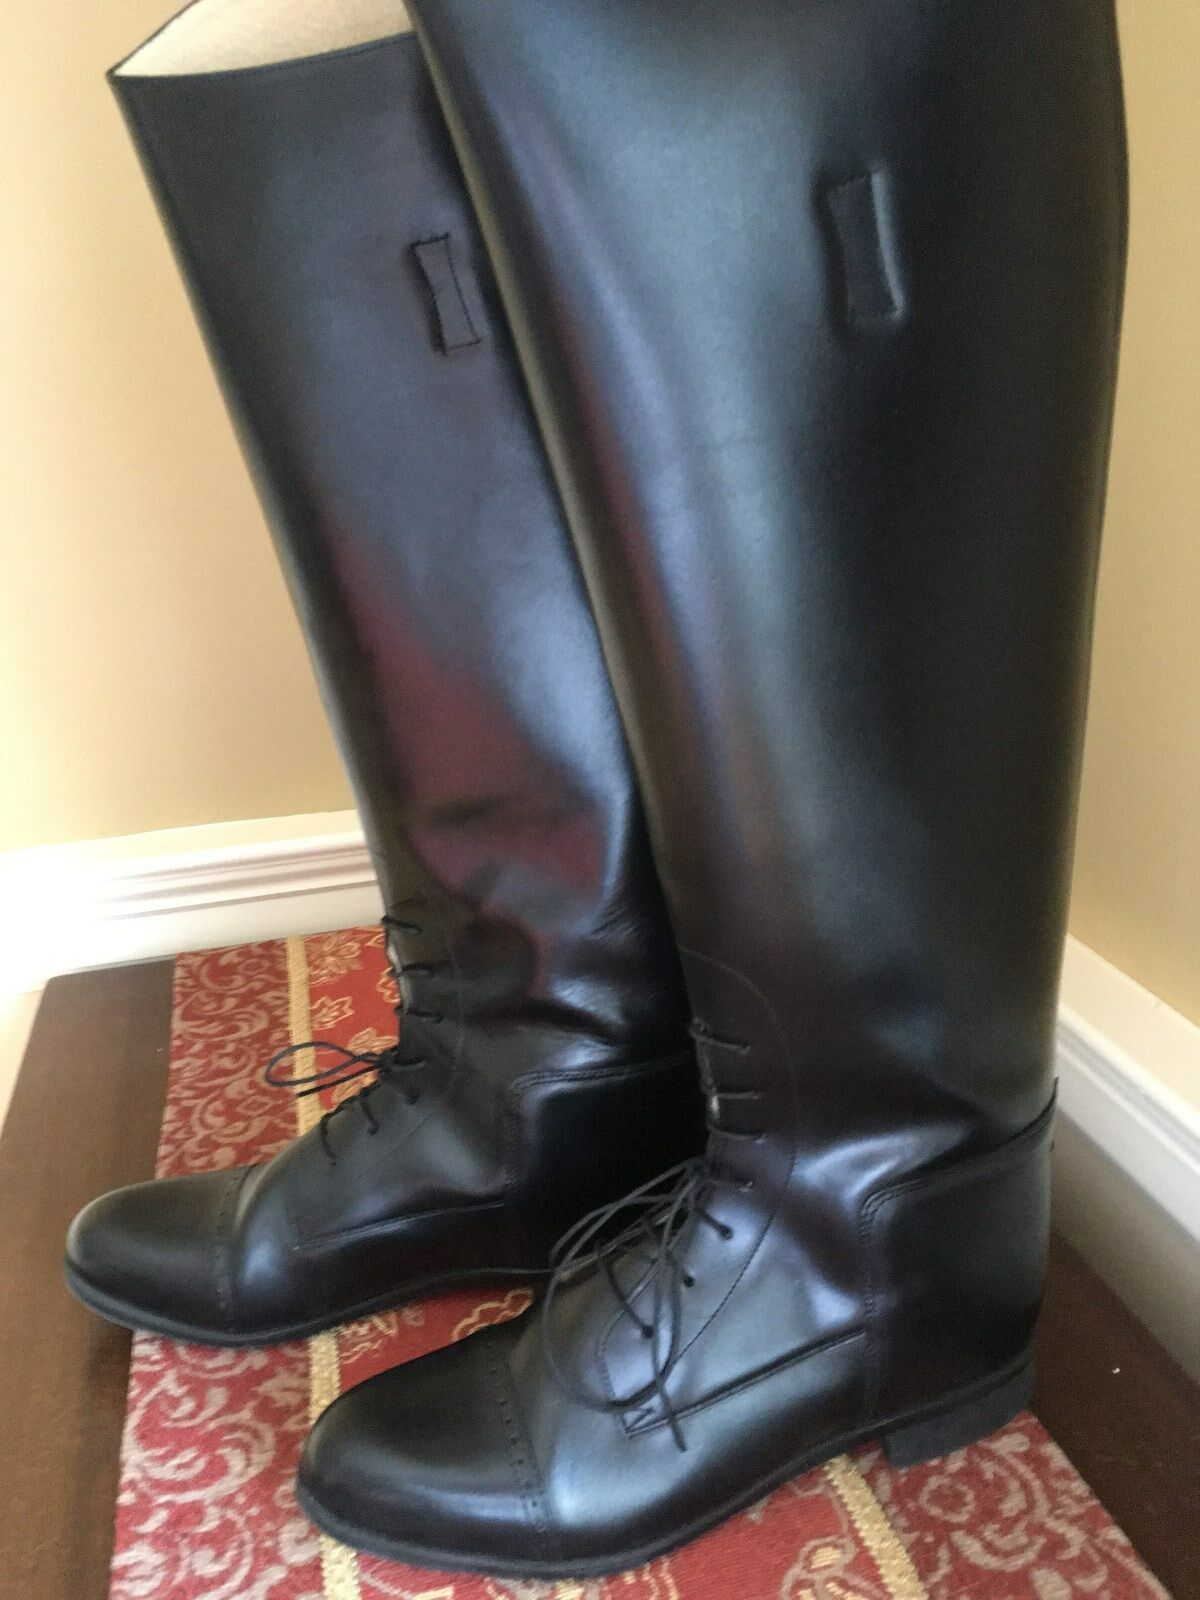 AMAZONAS Super Comfort Tall Lace-Up Equestrian Riding Boots  - Size 10R  save up to 50%